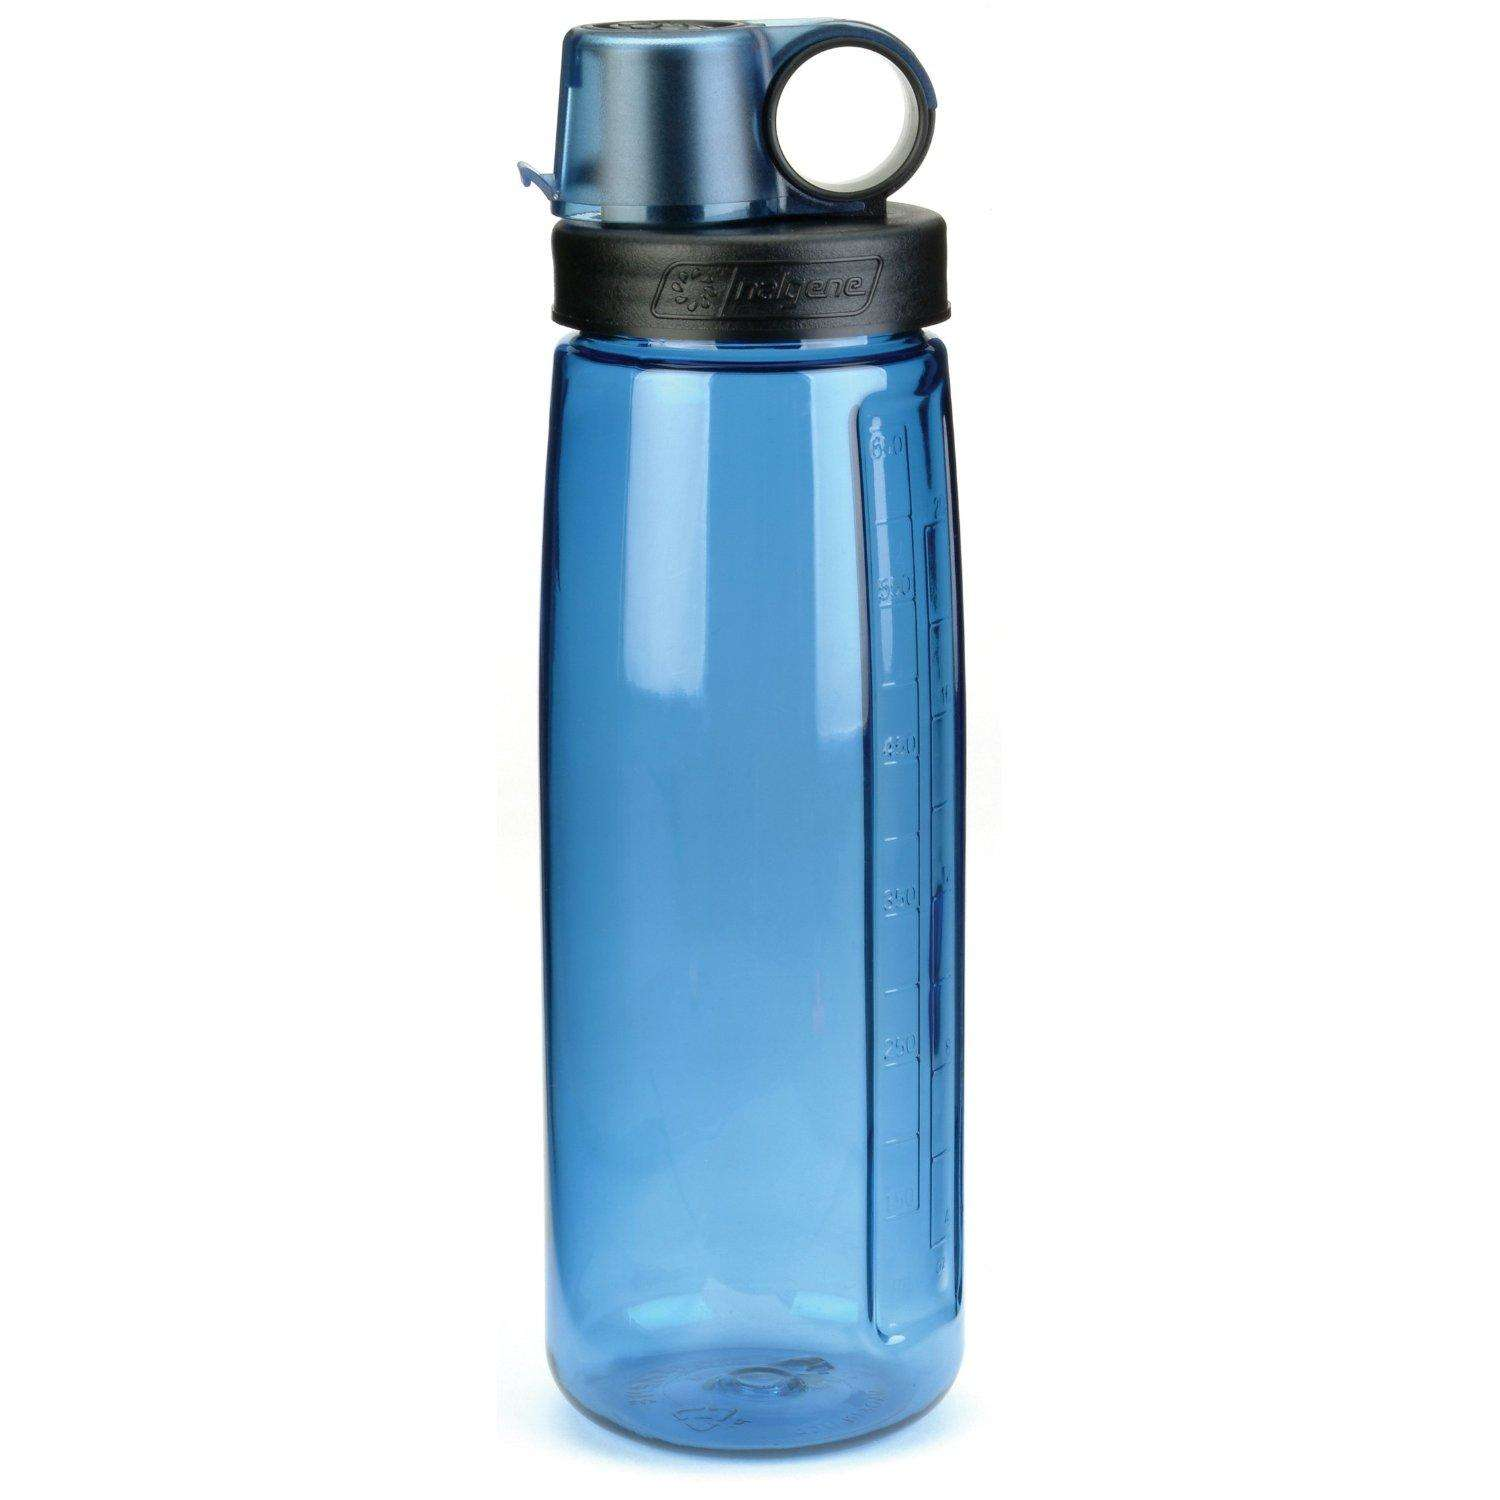 c7a054769c Nalgene With Cup Related Keywords & Suggestions - Nalgene With Cup ...